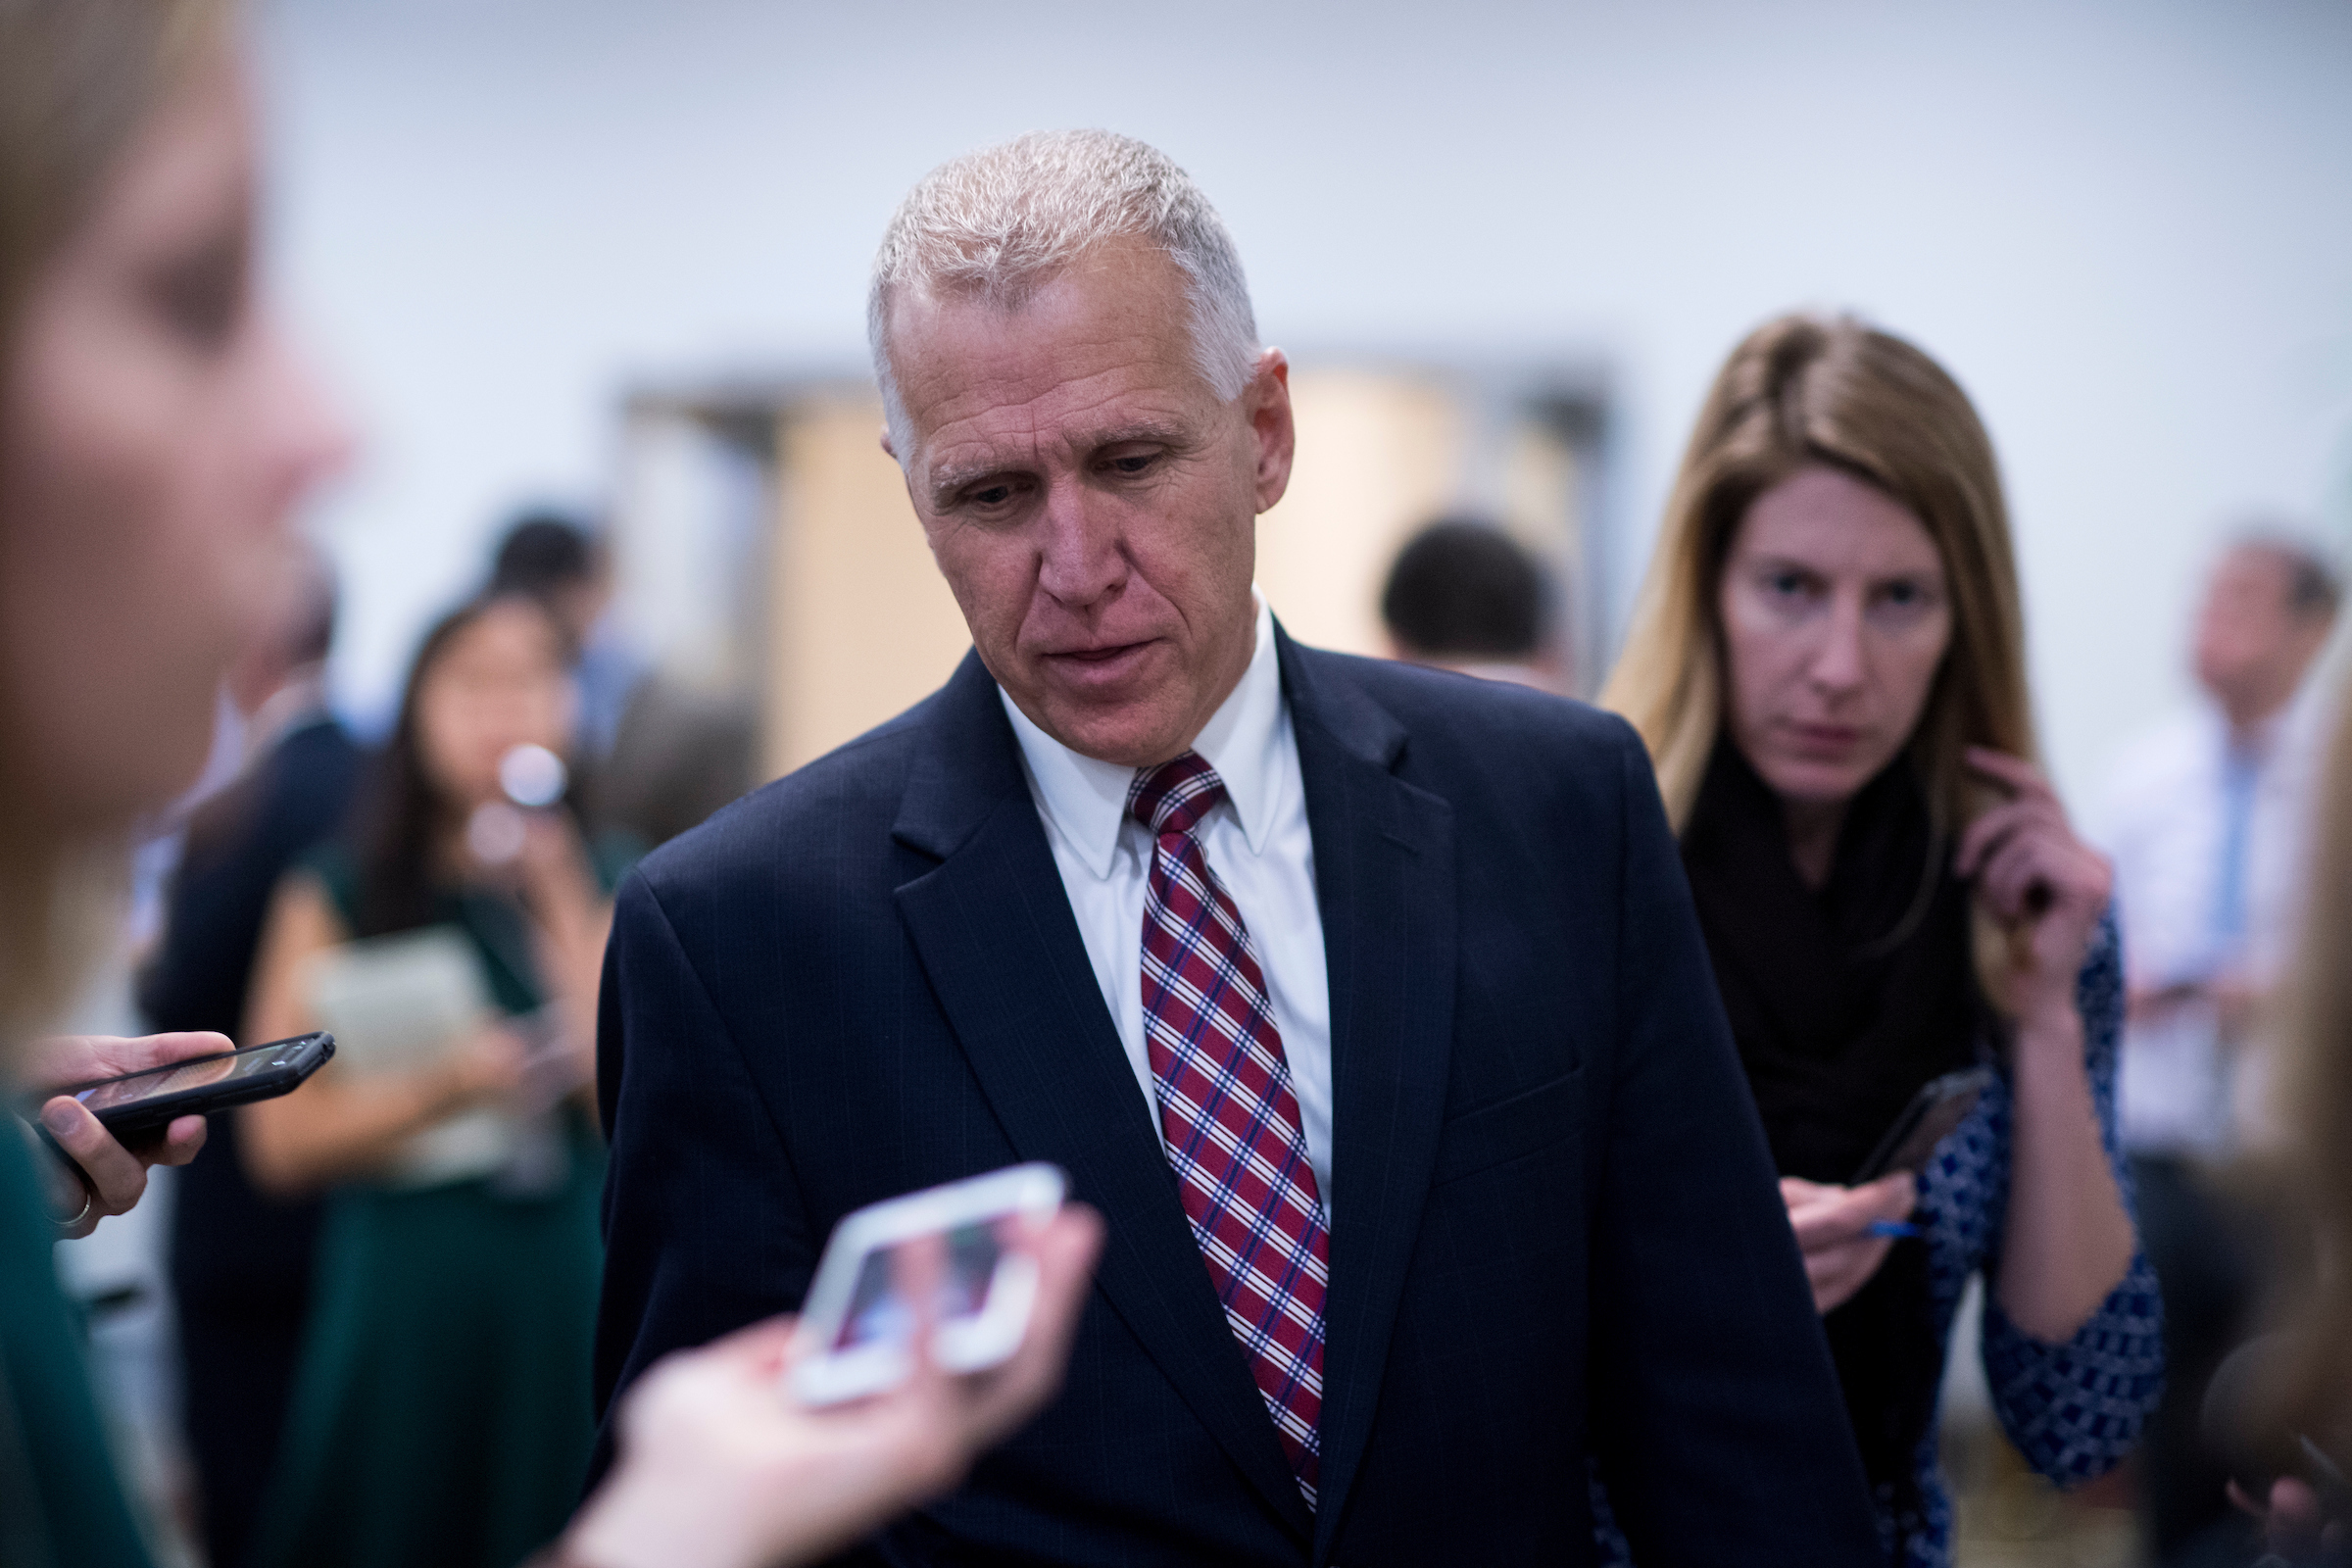 Sen. Thom Tillis, R-N.C., speaks with reporters as he arrives in the Capitol for the Senate Republicans' lunch with President Donald Trump on Tuesday, Nov. 28, 2017. (Photo By Bill Clark/CQ Roll Call)